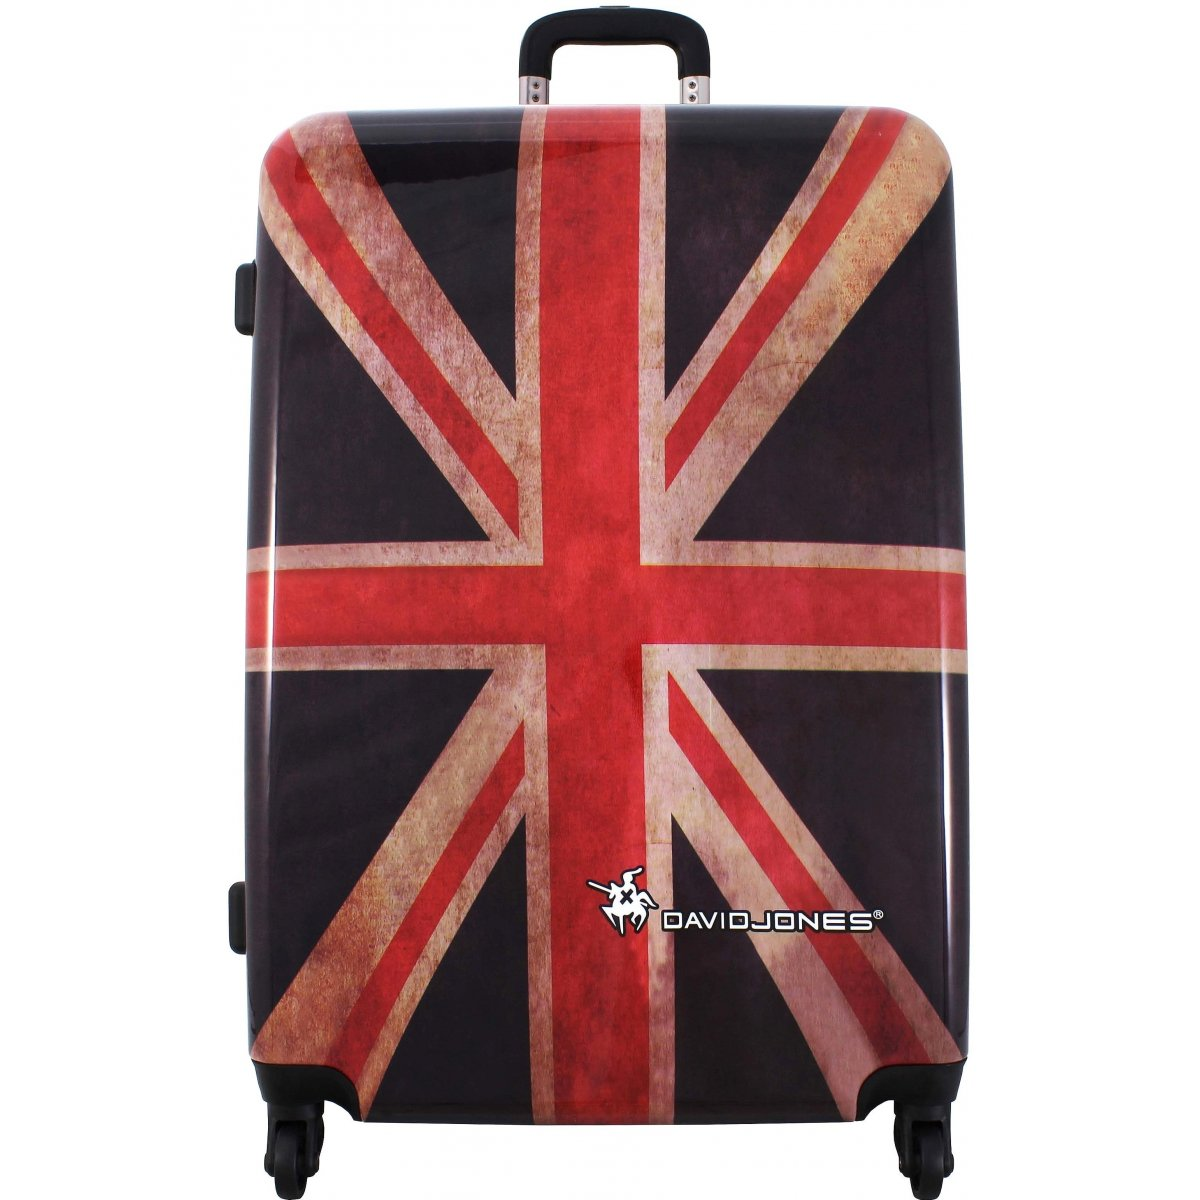 Valise rigide david jones 76cm ba20571g couleur principale drapeau uk p - Boutique londres pas cher ...